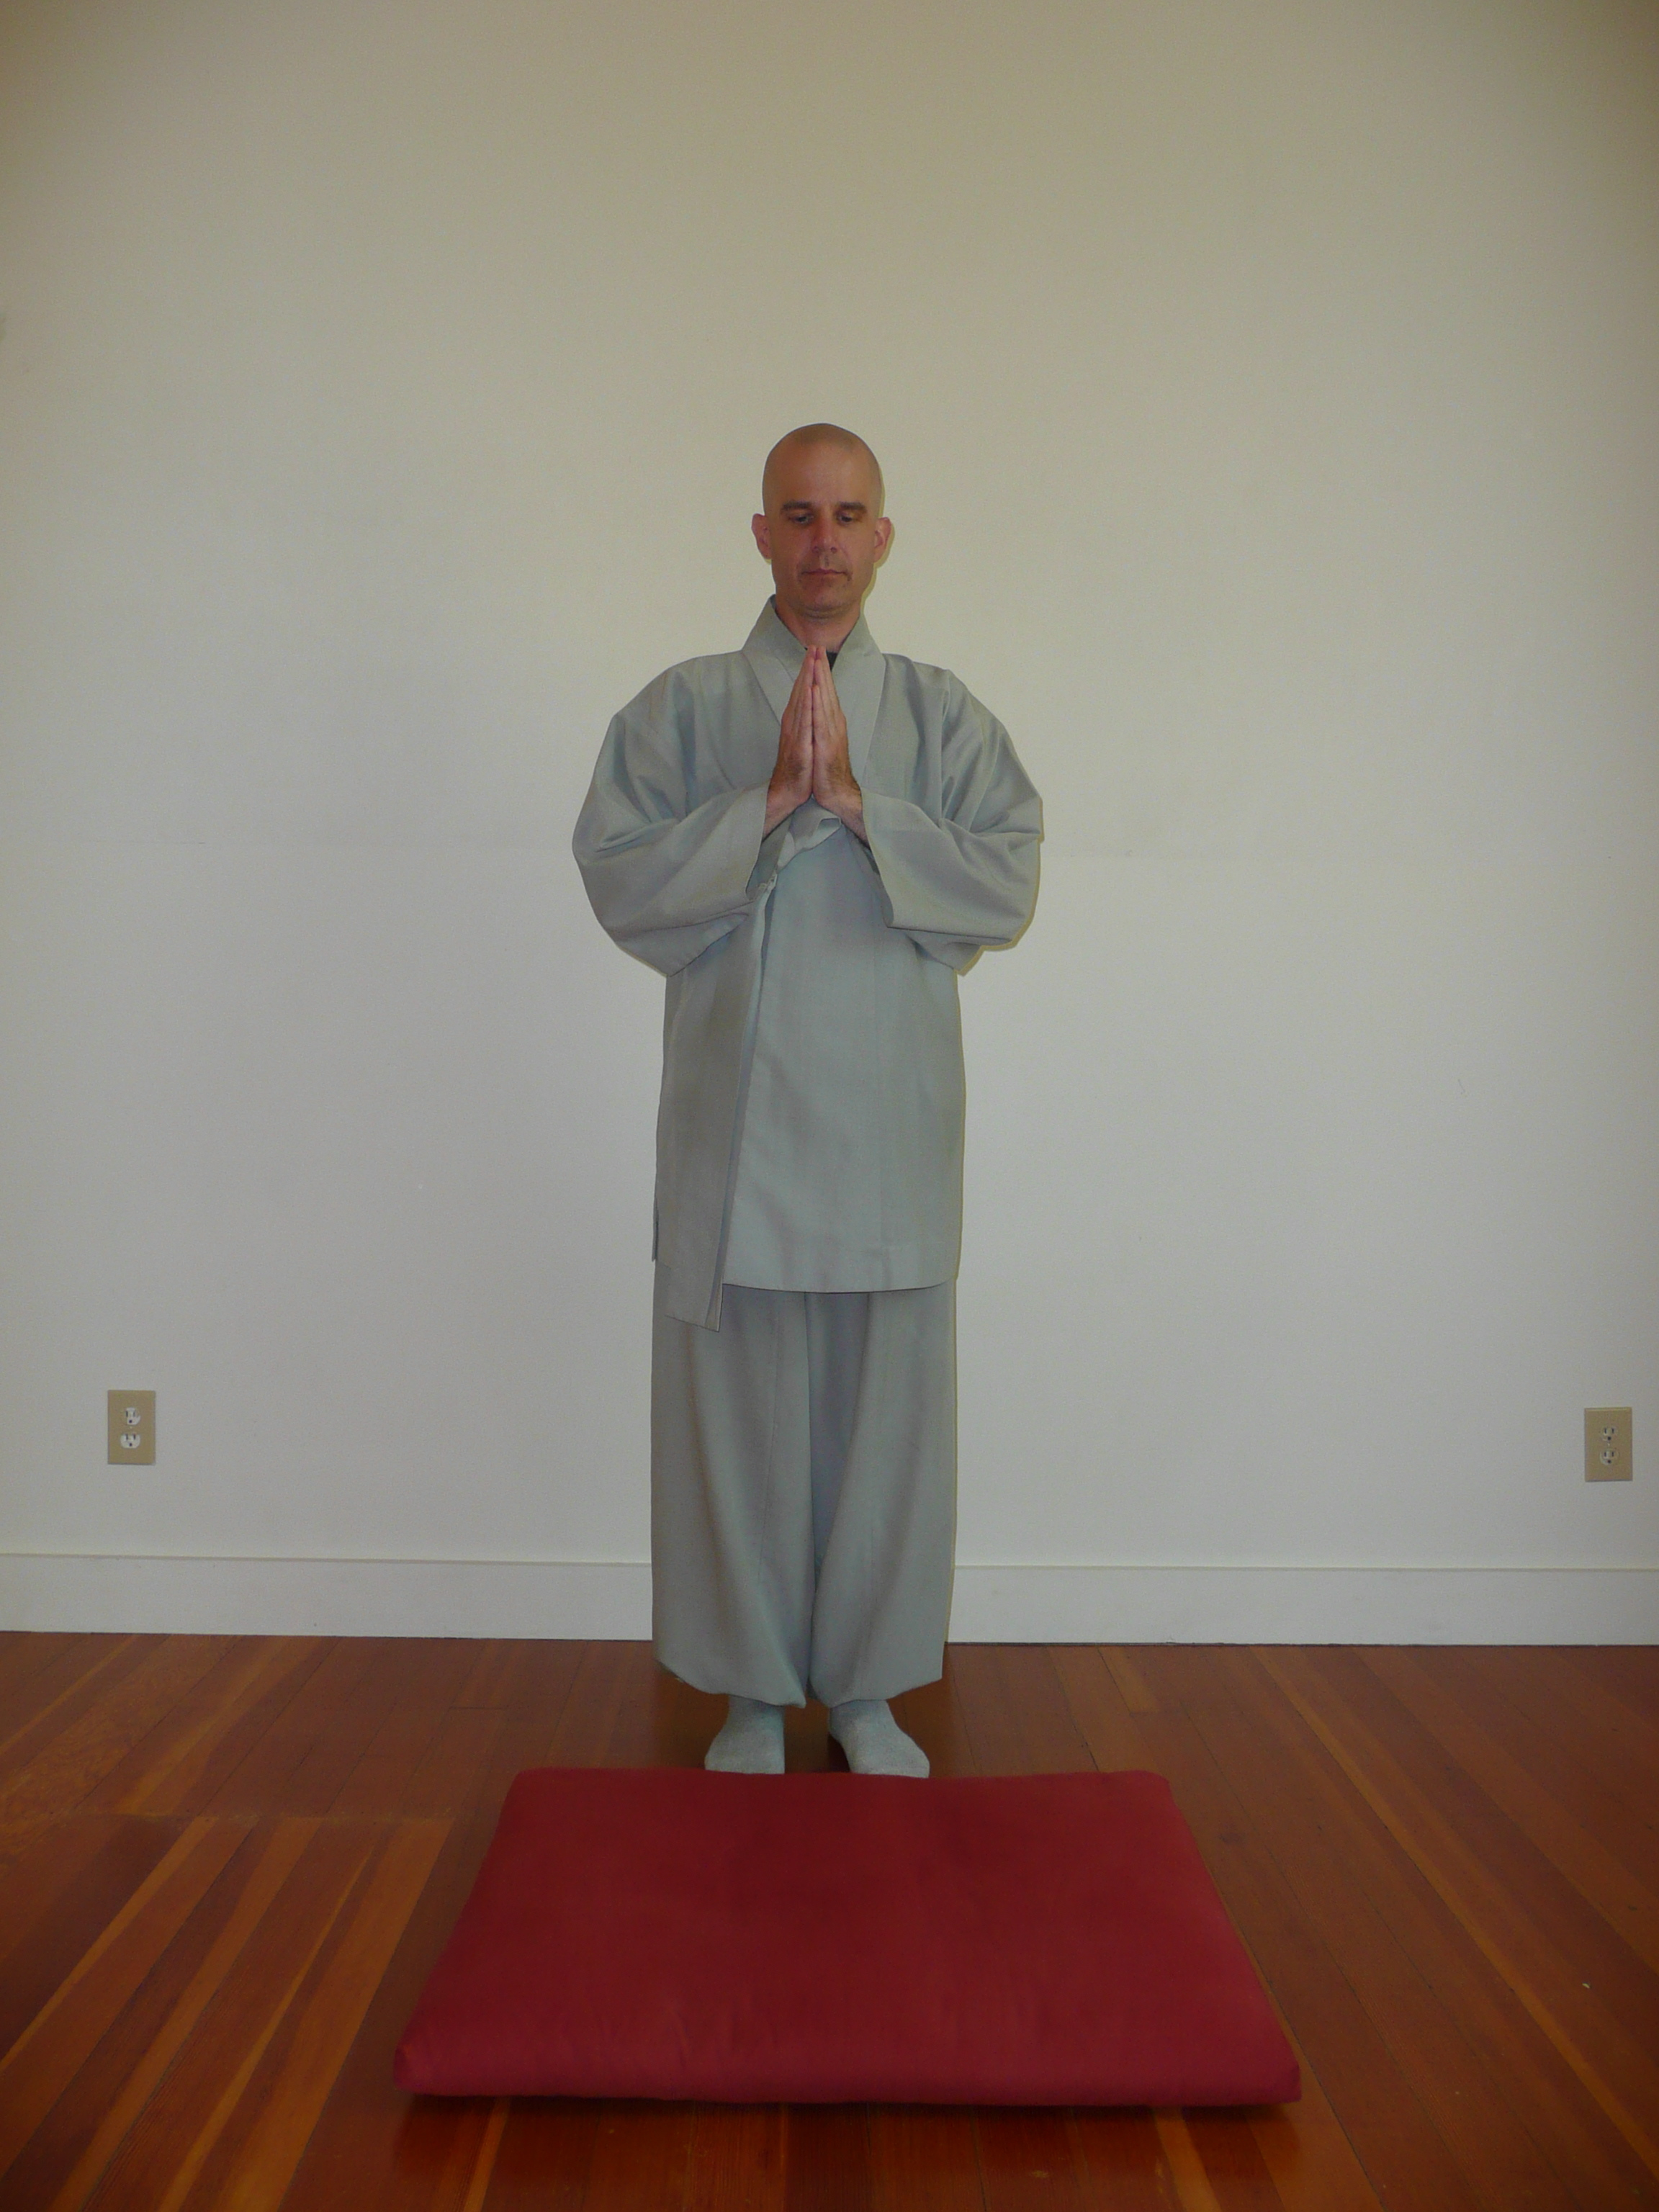 7. Return to the upright standing position. -